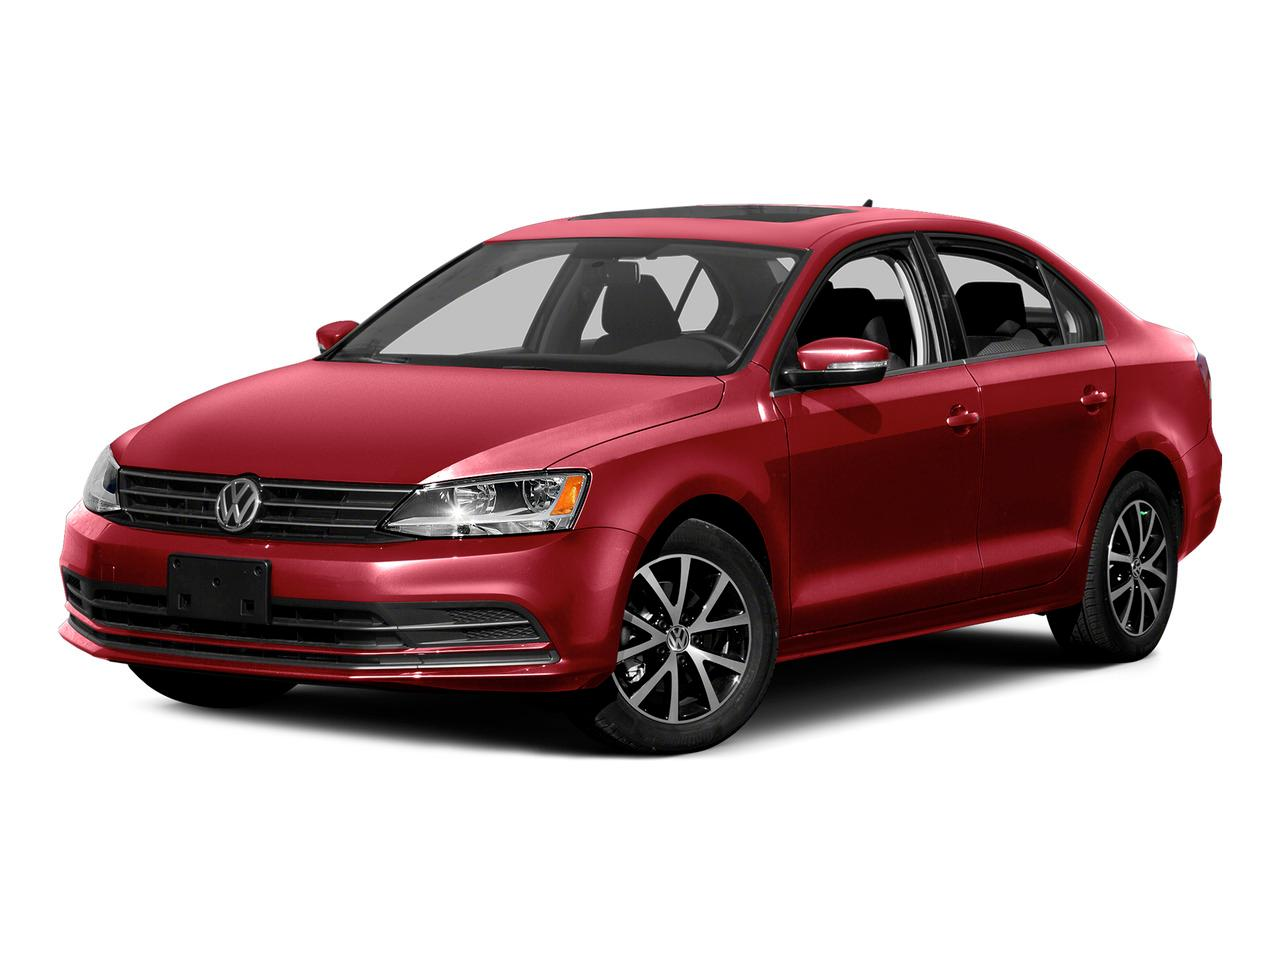 2015 Volkswagen Jetta Sedan Vehicle Photo in Rockville, MD 20852